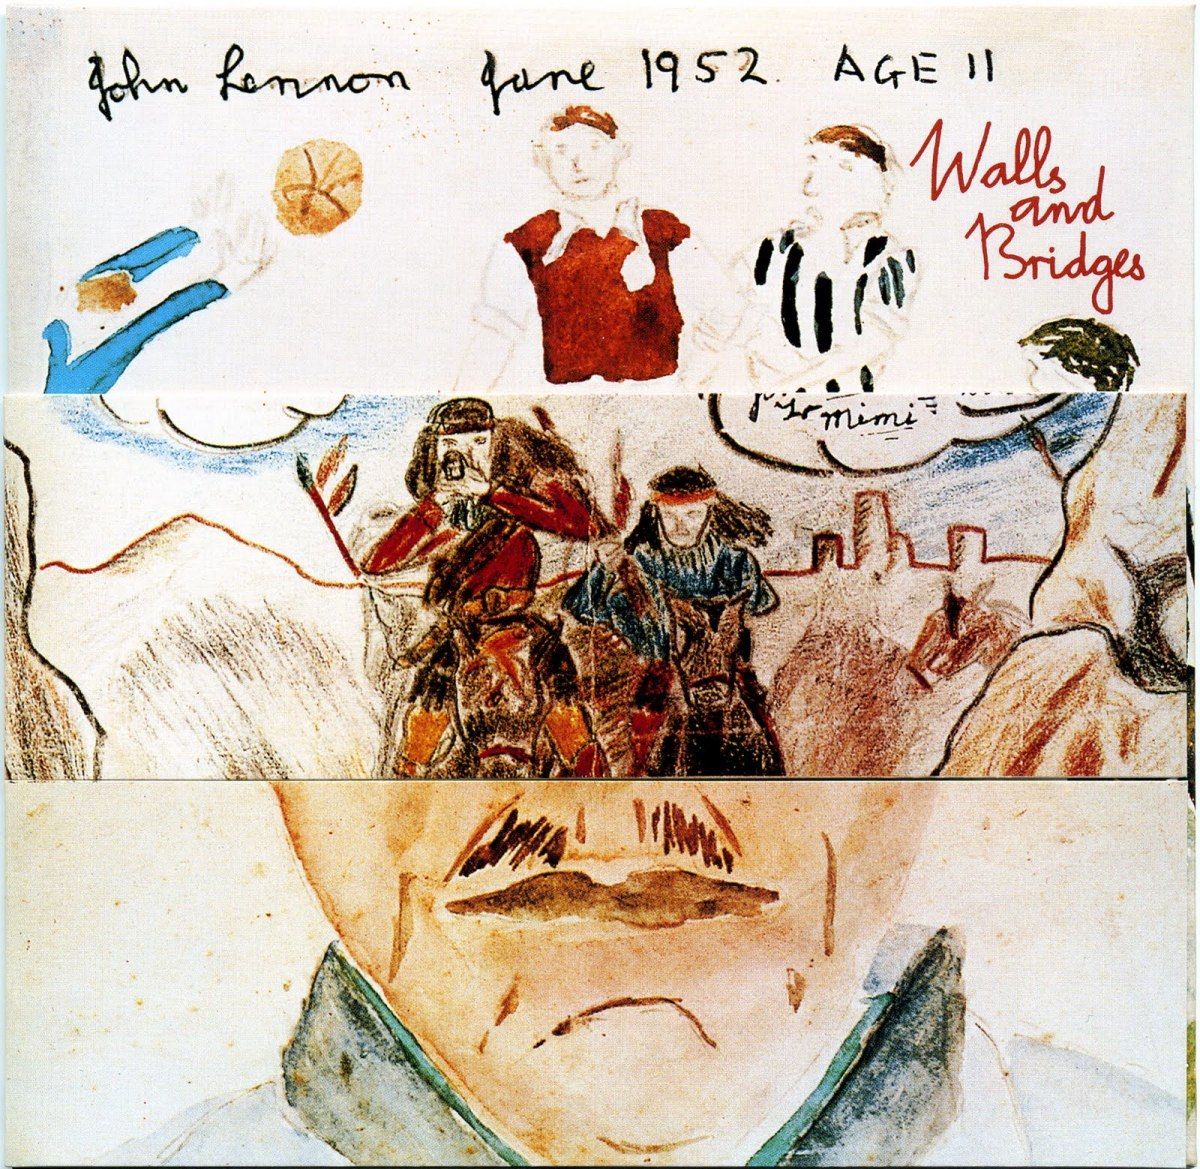 """Walls and Bridges""—John Lennon's Lost Weekend Album"